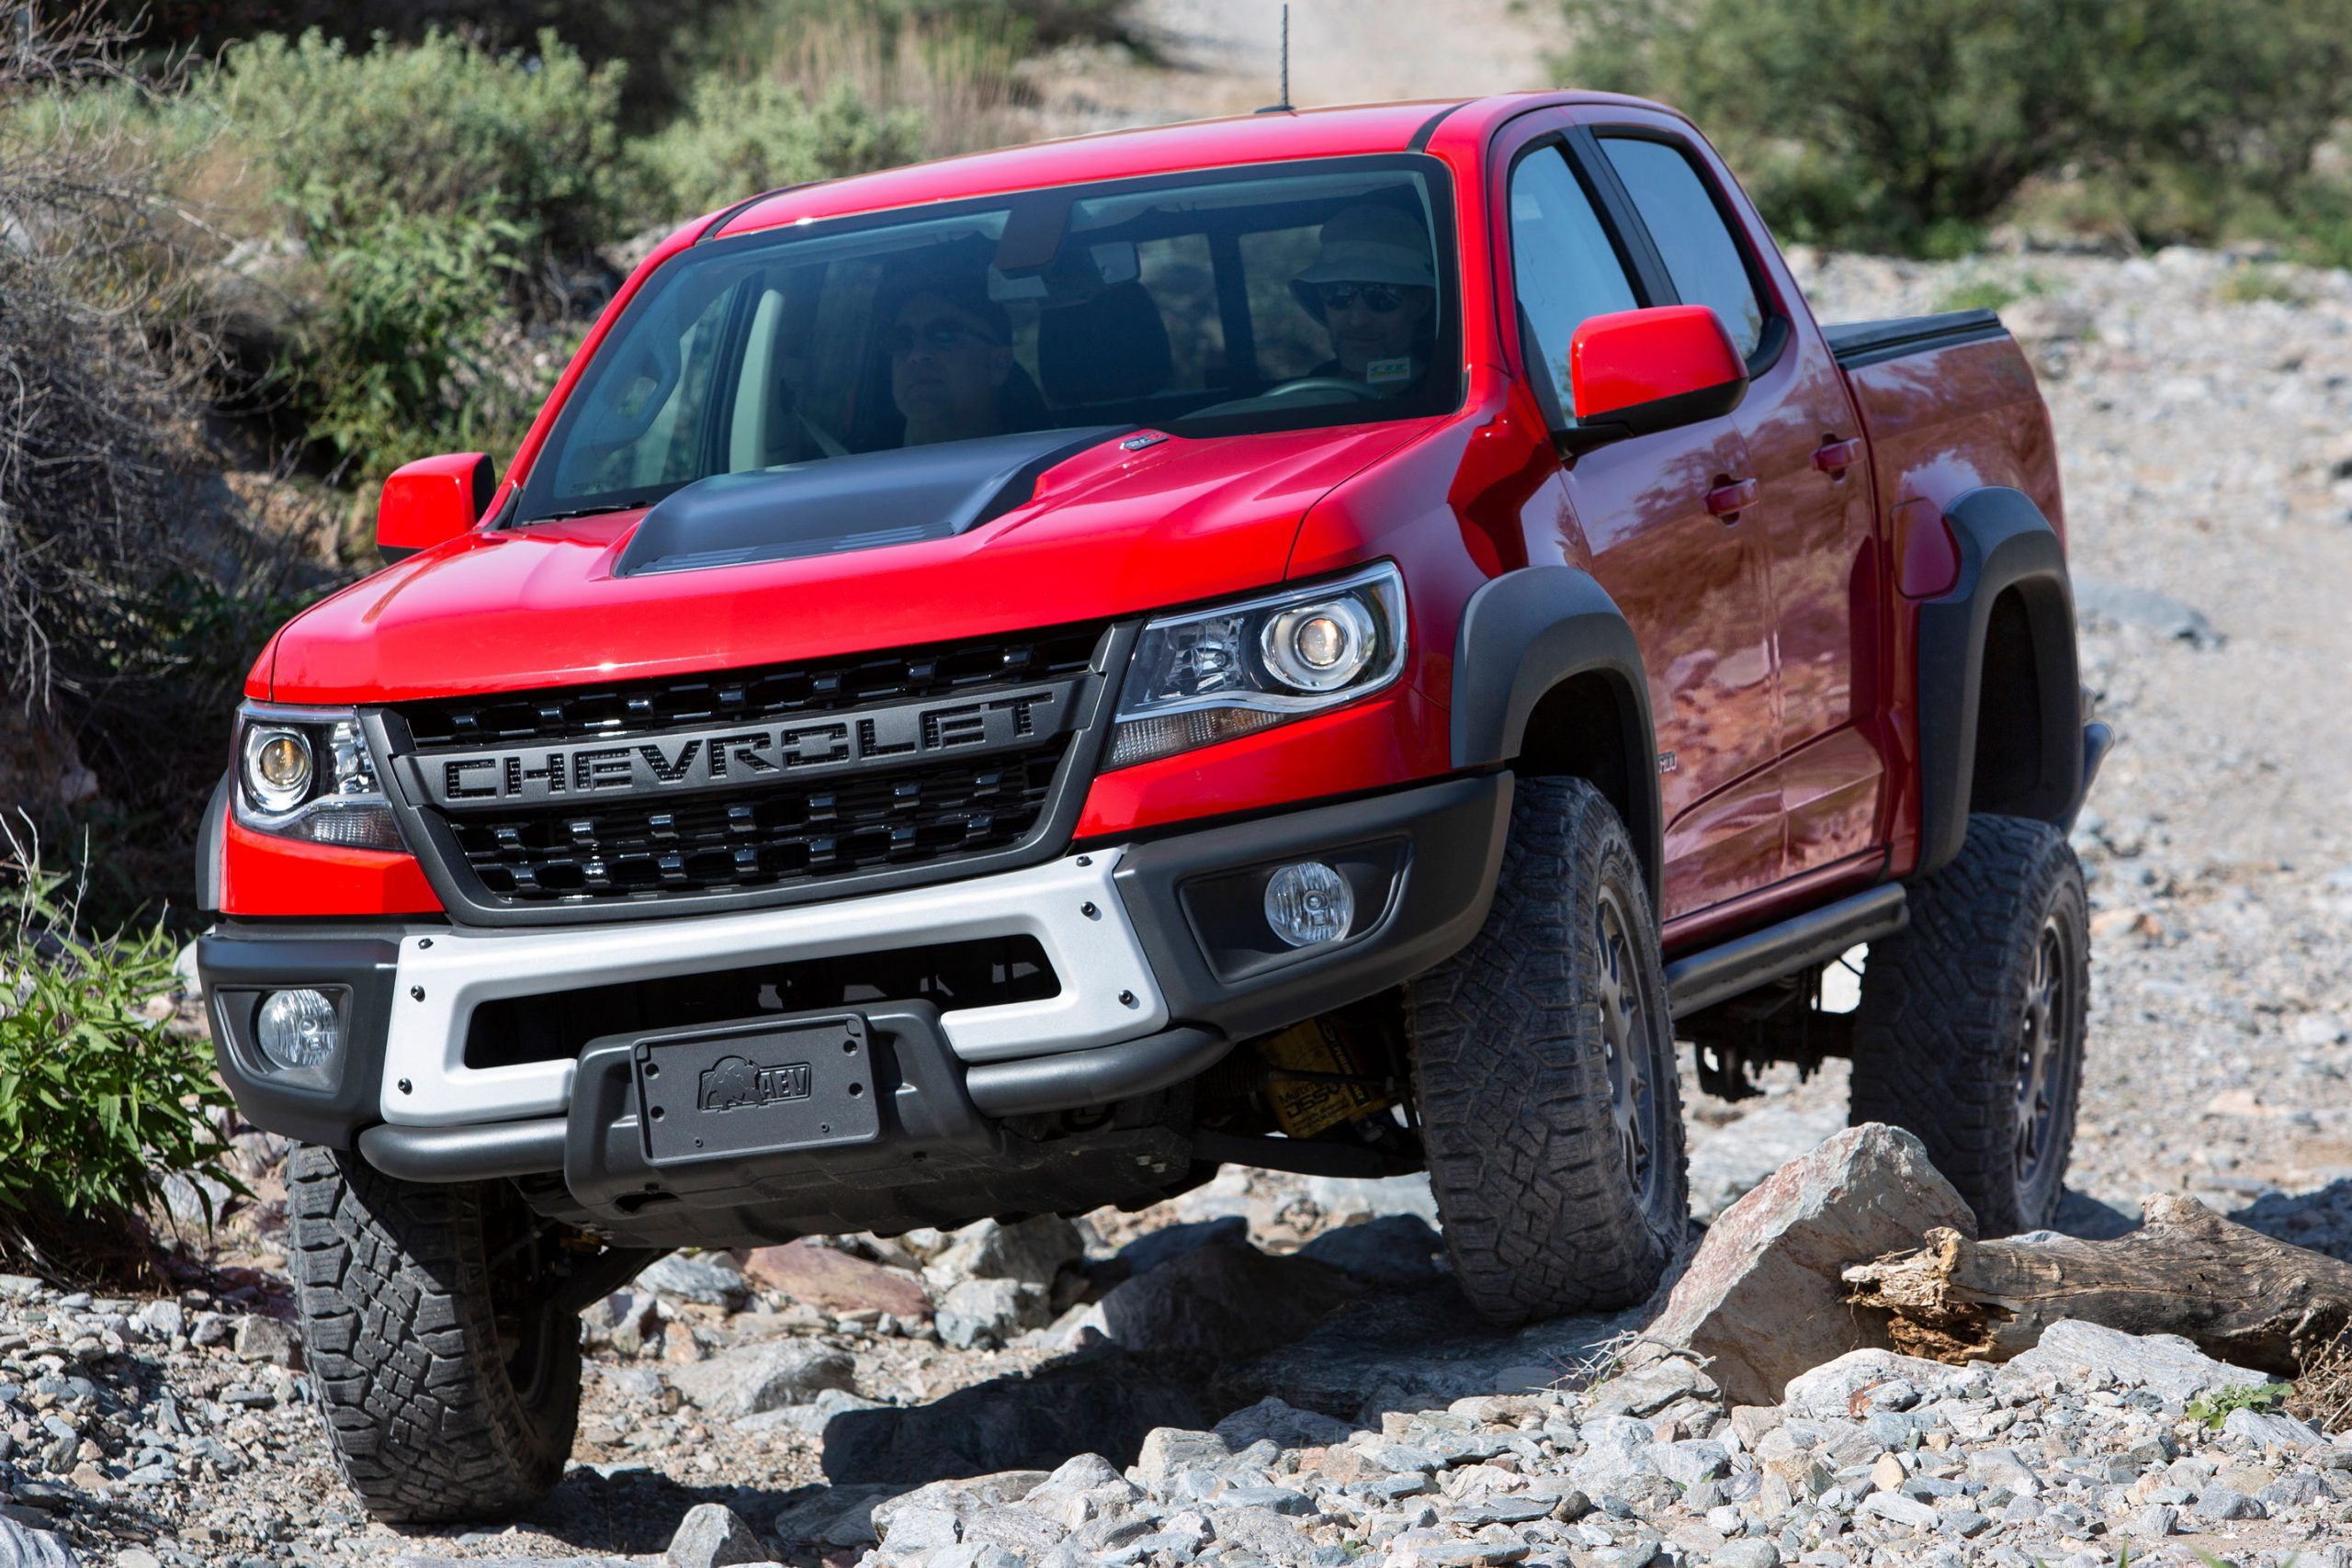 2020 Chevy Colorado Going Launched Soon Images